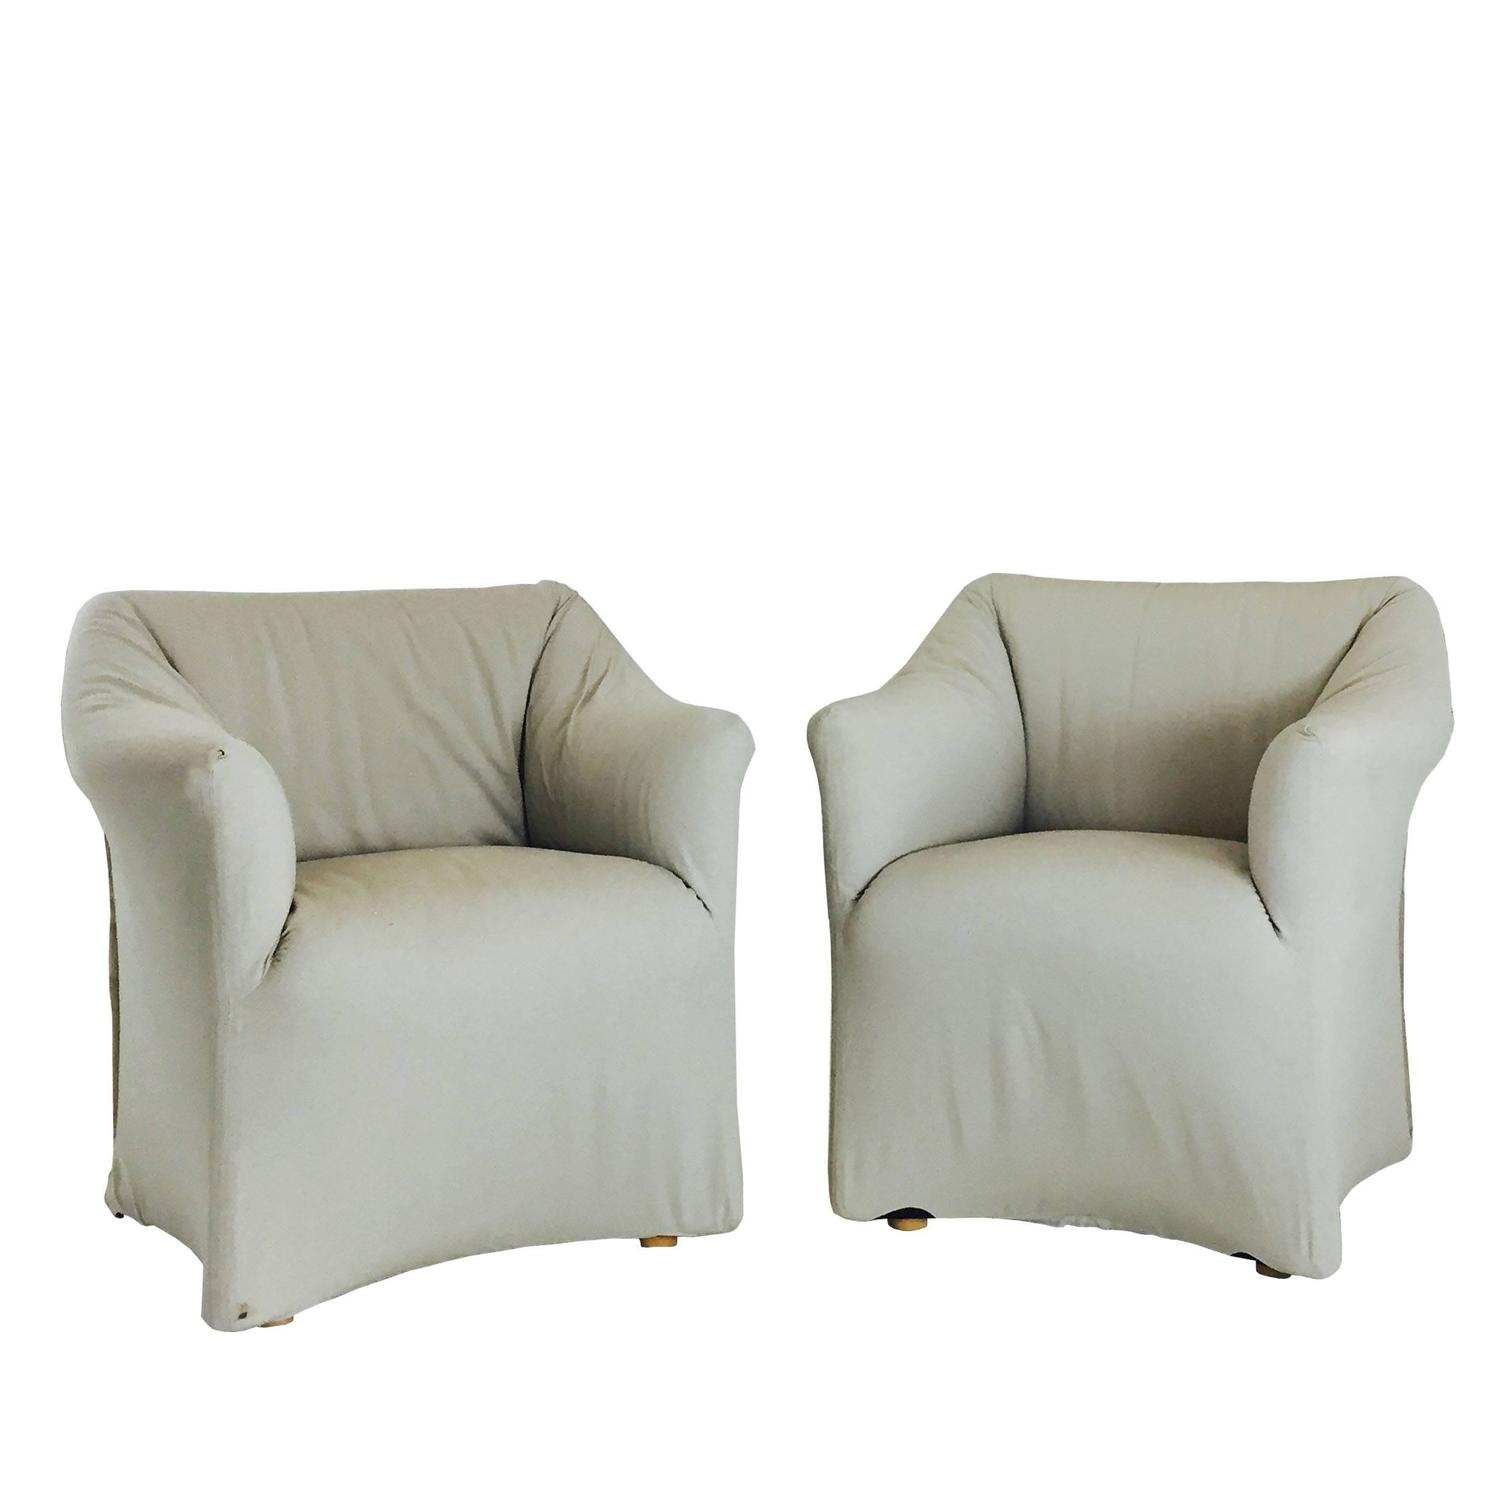 Pair of Tentazione Lounge Chairs for Cassina by Mario Bellini For